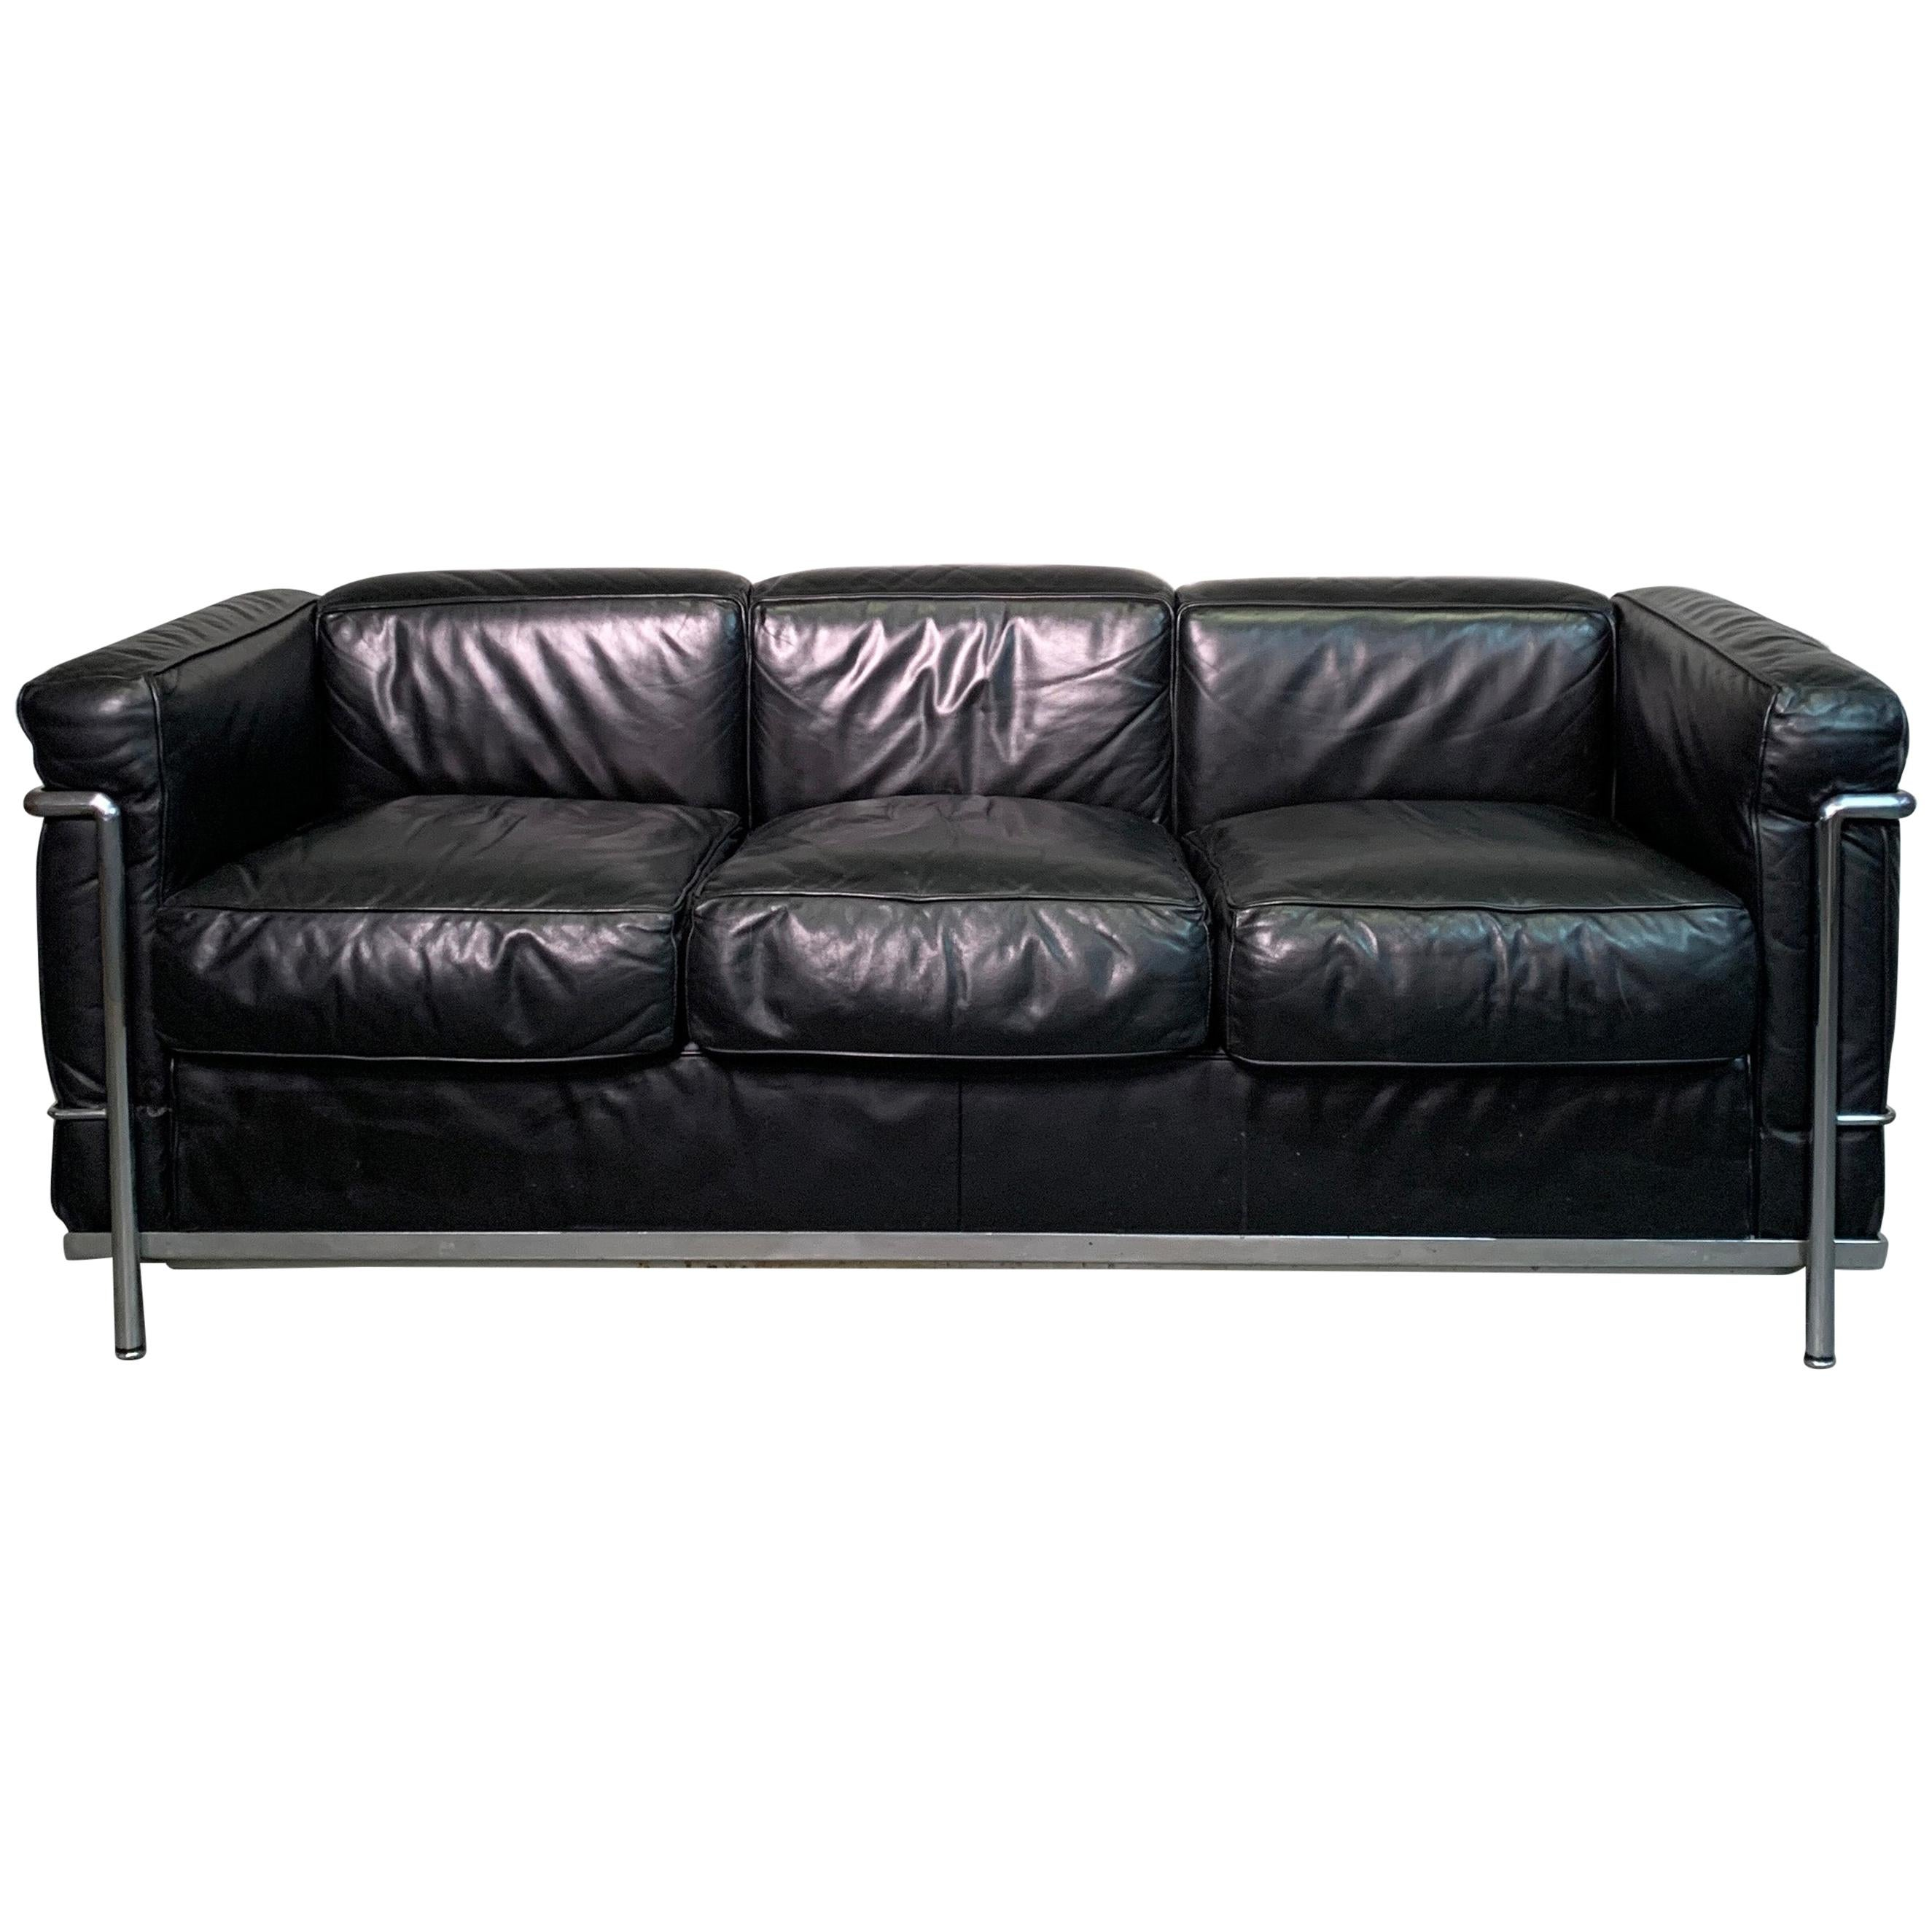 Leather and Chrome Three Seat LC21 Sofa by Le Corbusier for Cassina